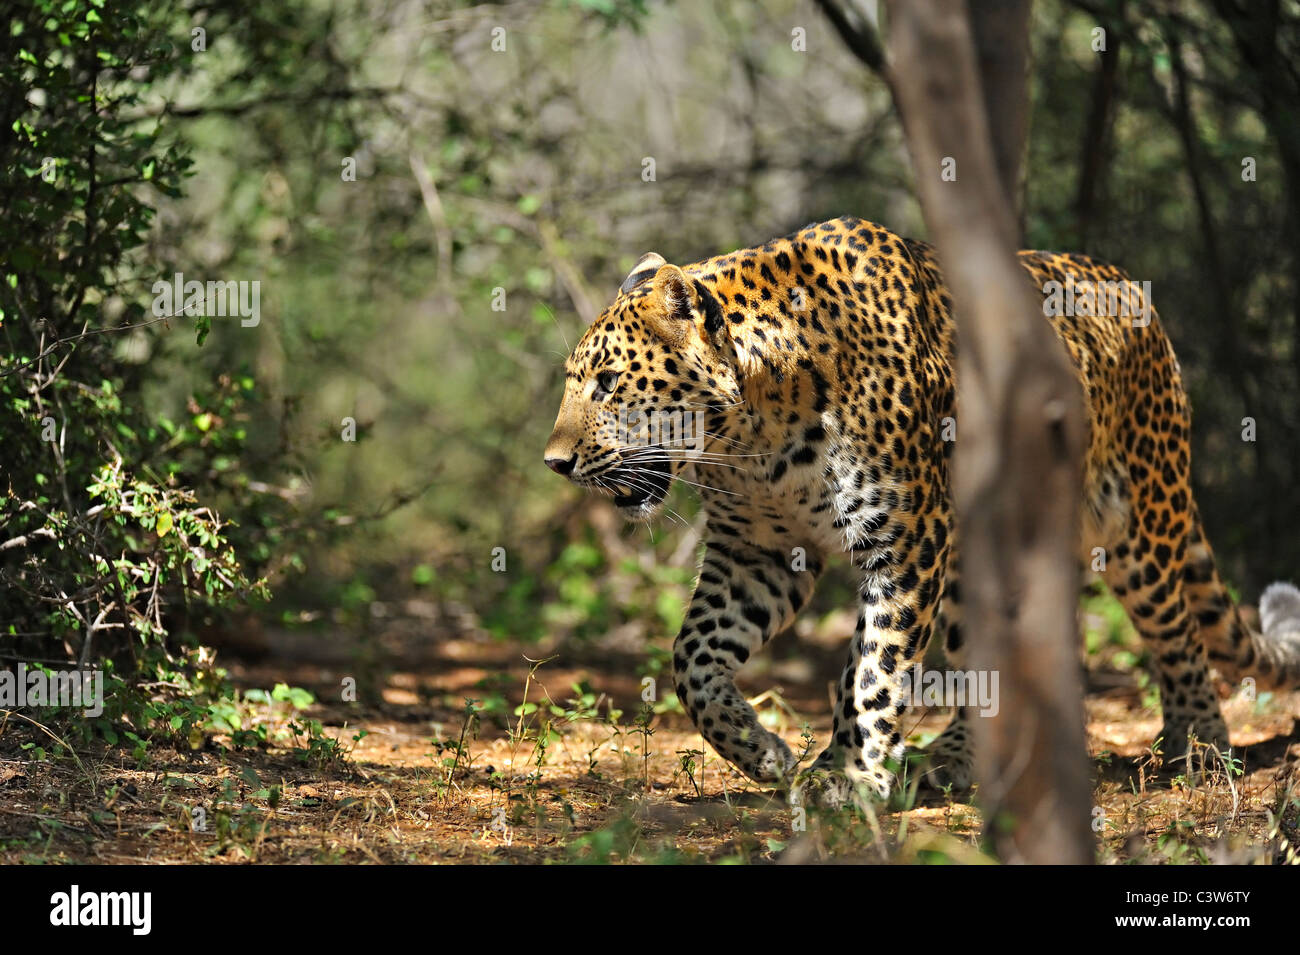 Leopard on the tracks in Ranthambhore tiger reserve - Stock Image